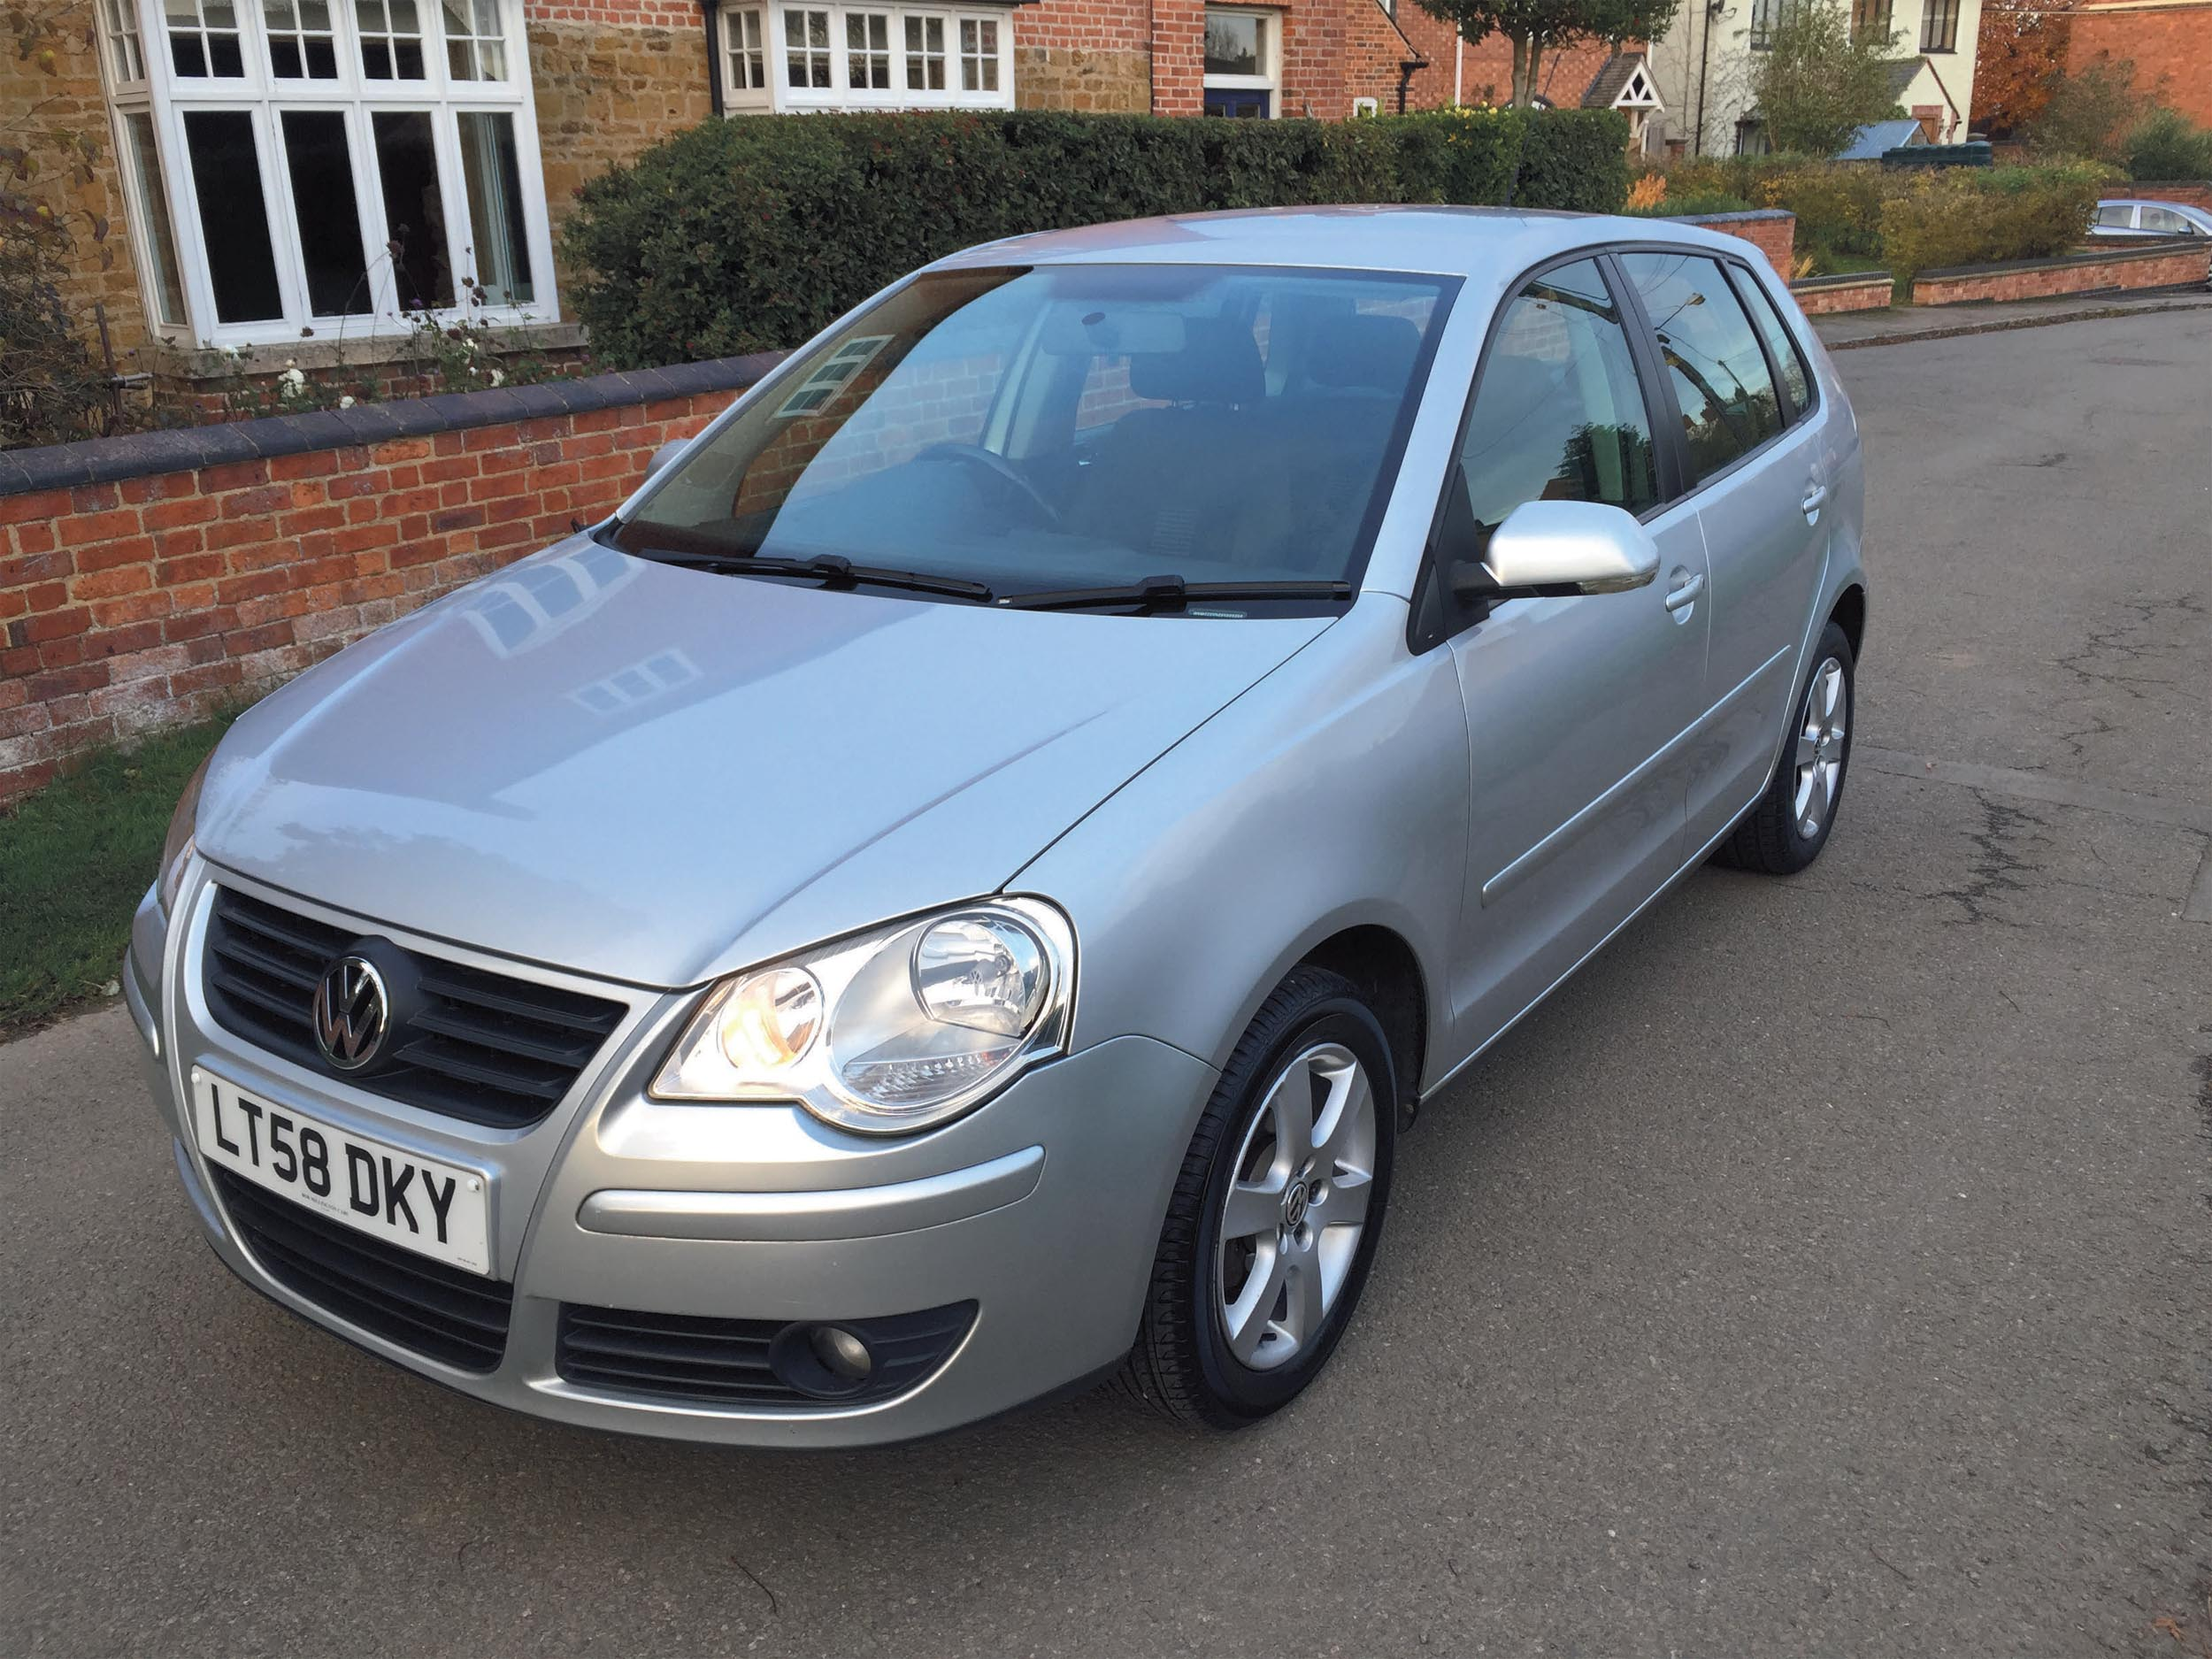 Vw Polo Used Volkswagen Vw Cars Buy And Sell In Banbury Preloved